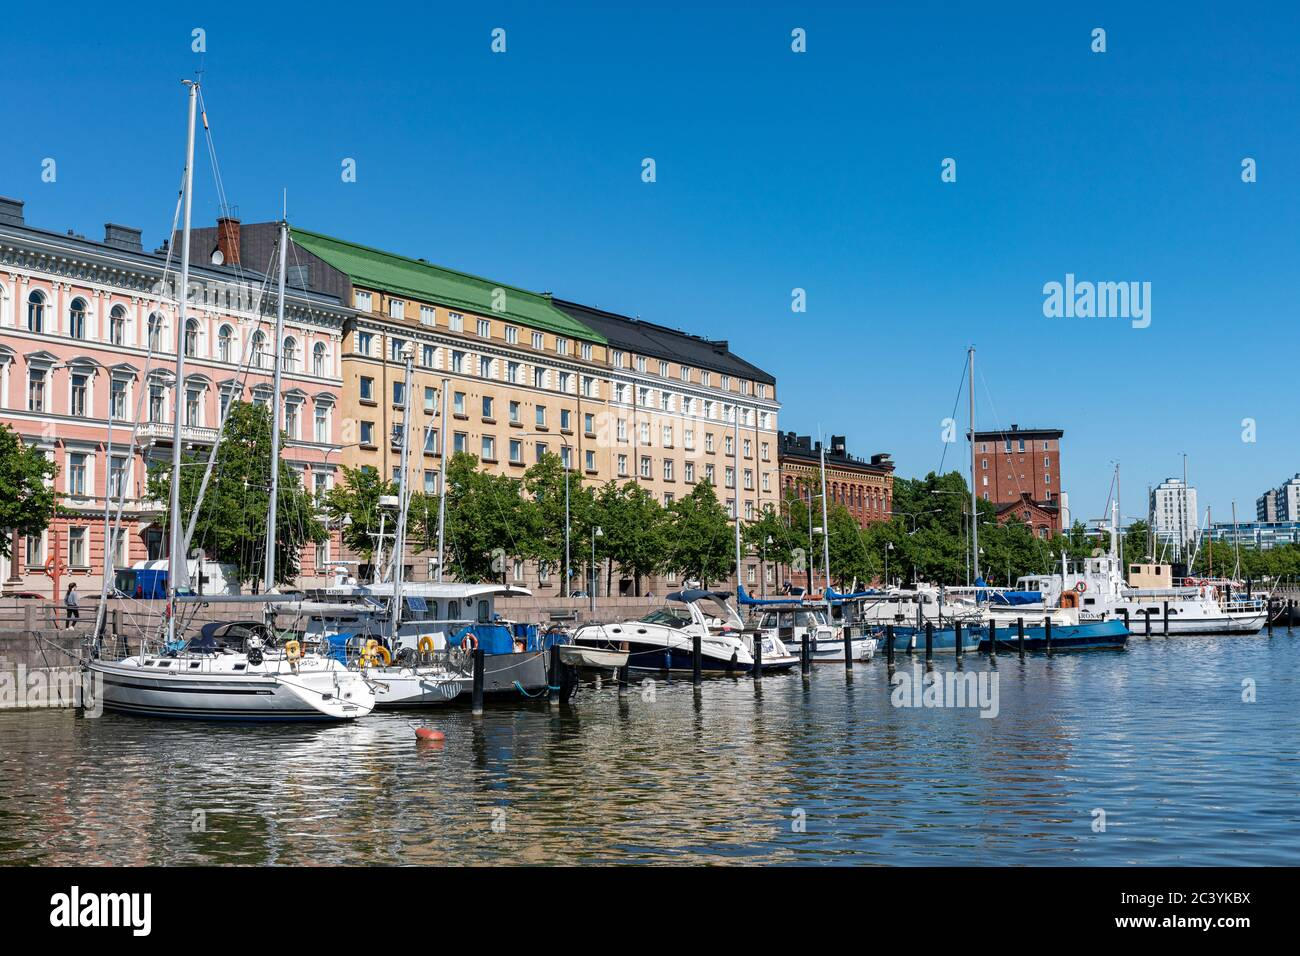 Moored boats and residential buildings of Pohjoisranta in Kruununhaka district of Helsinki, Finland Stock Photo